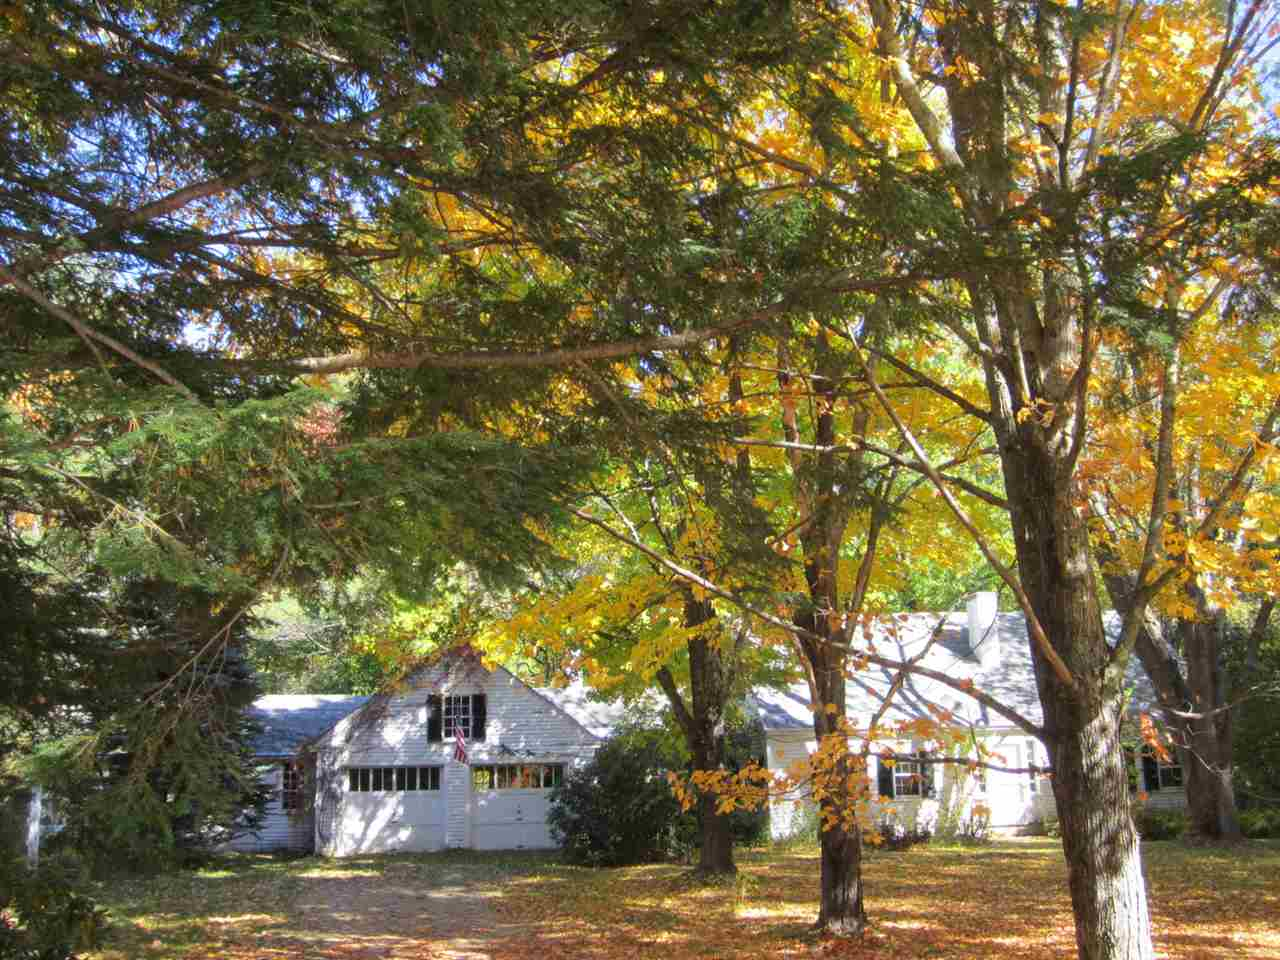 431 Shaker St, New London, NH 03257